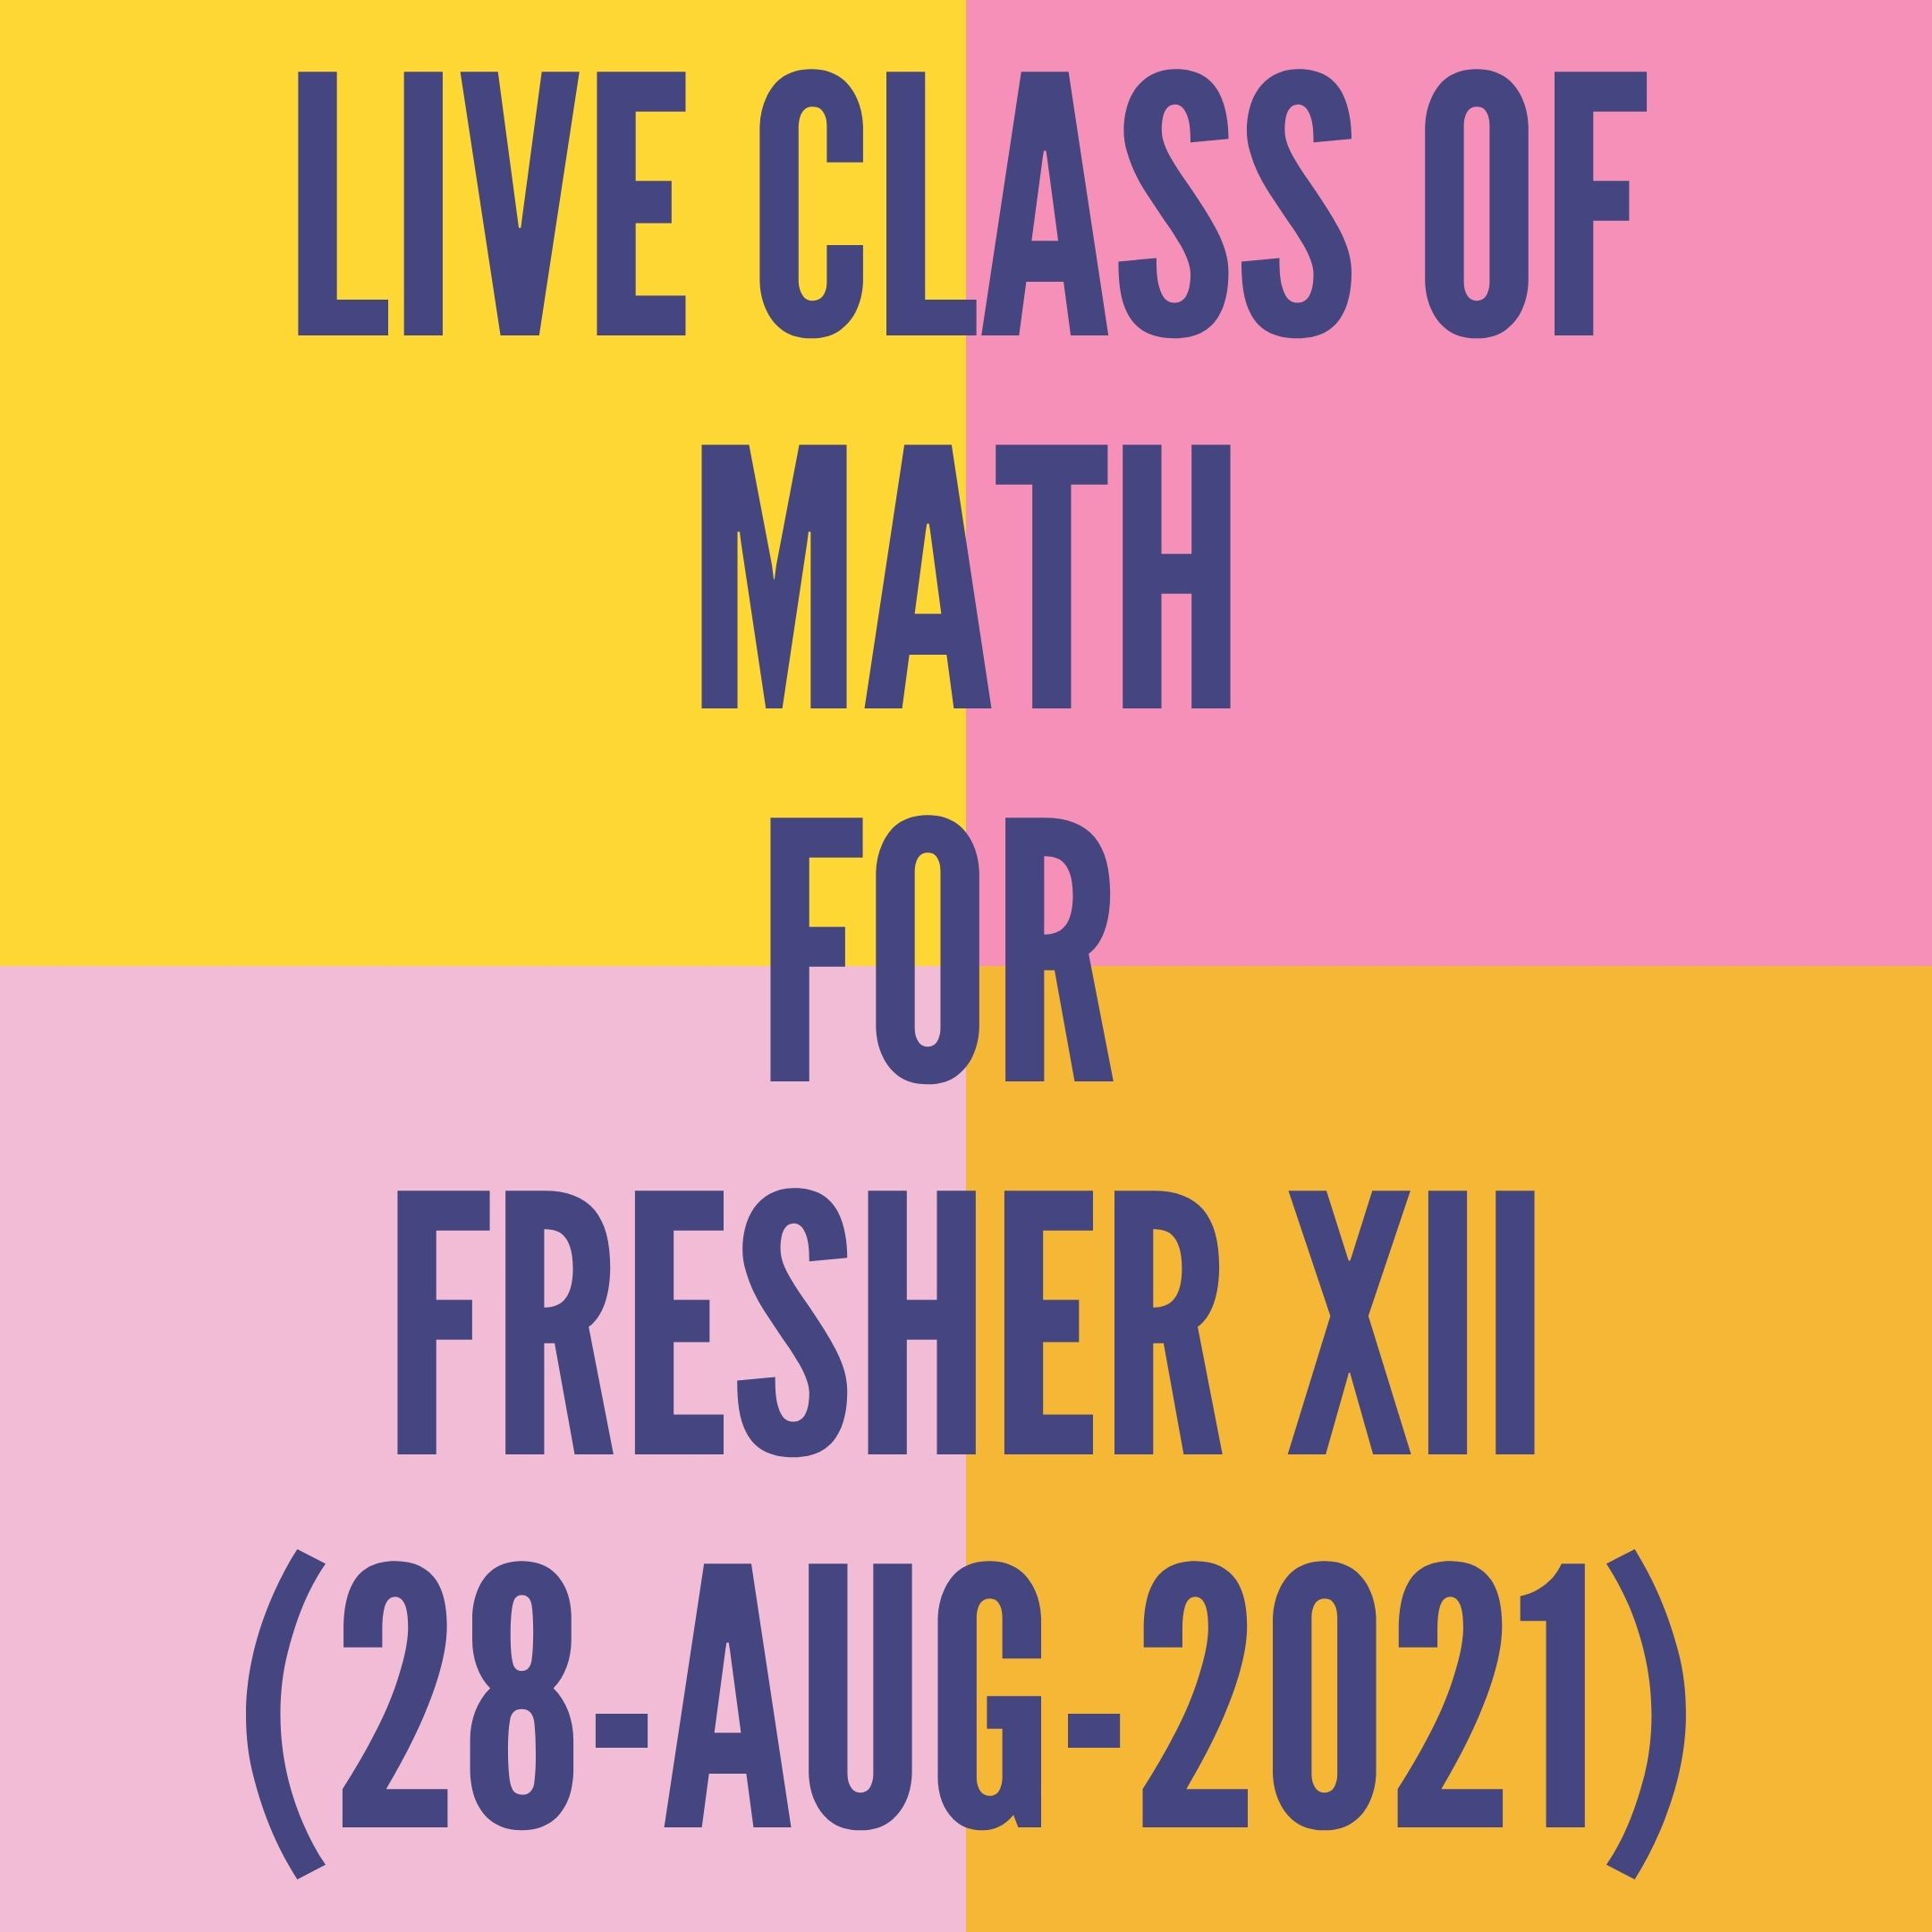 LIVE CLASS OF MATH FOR FRESHER (28-AUG-2021)